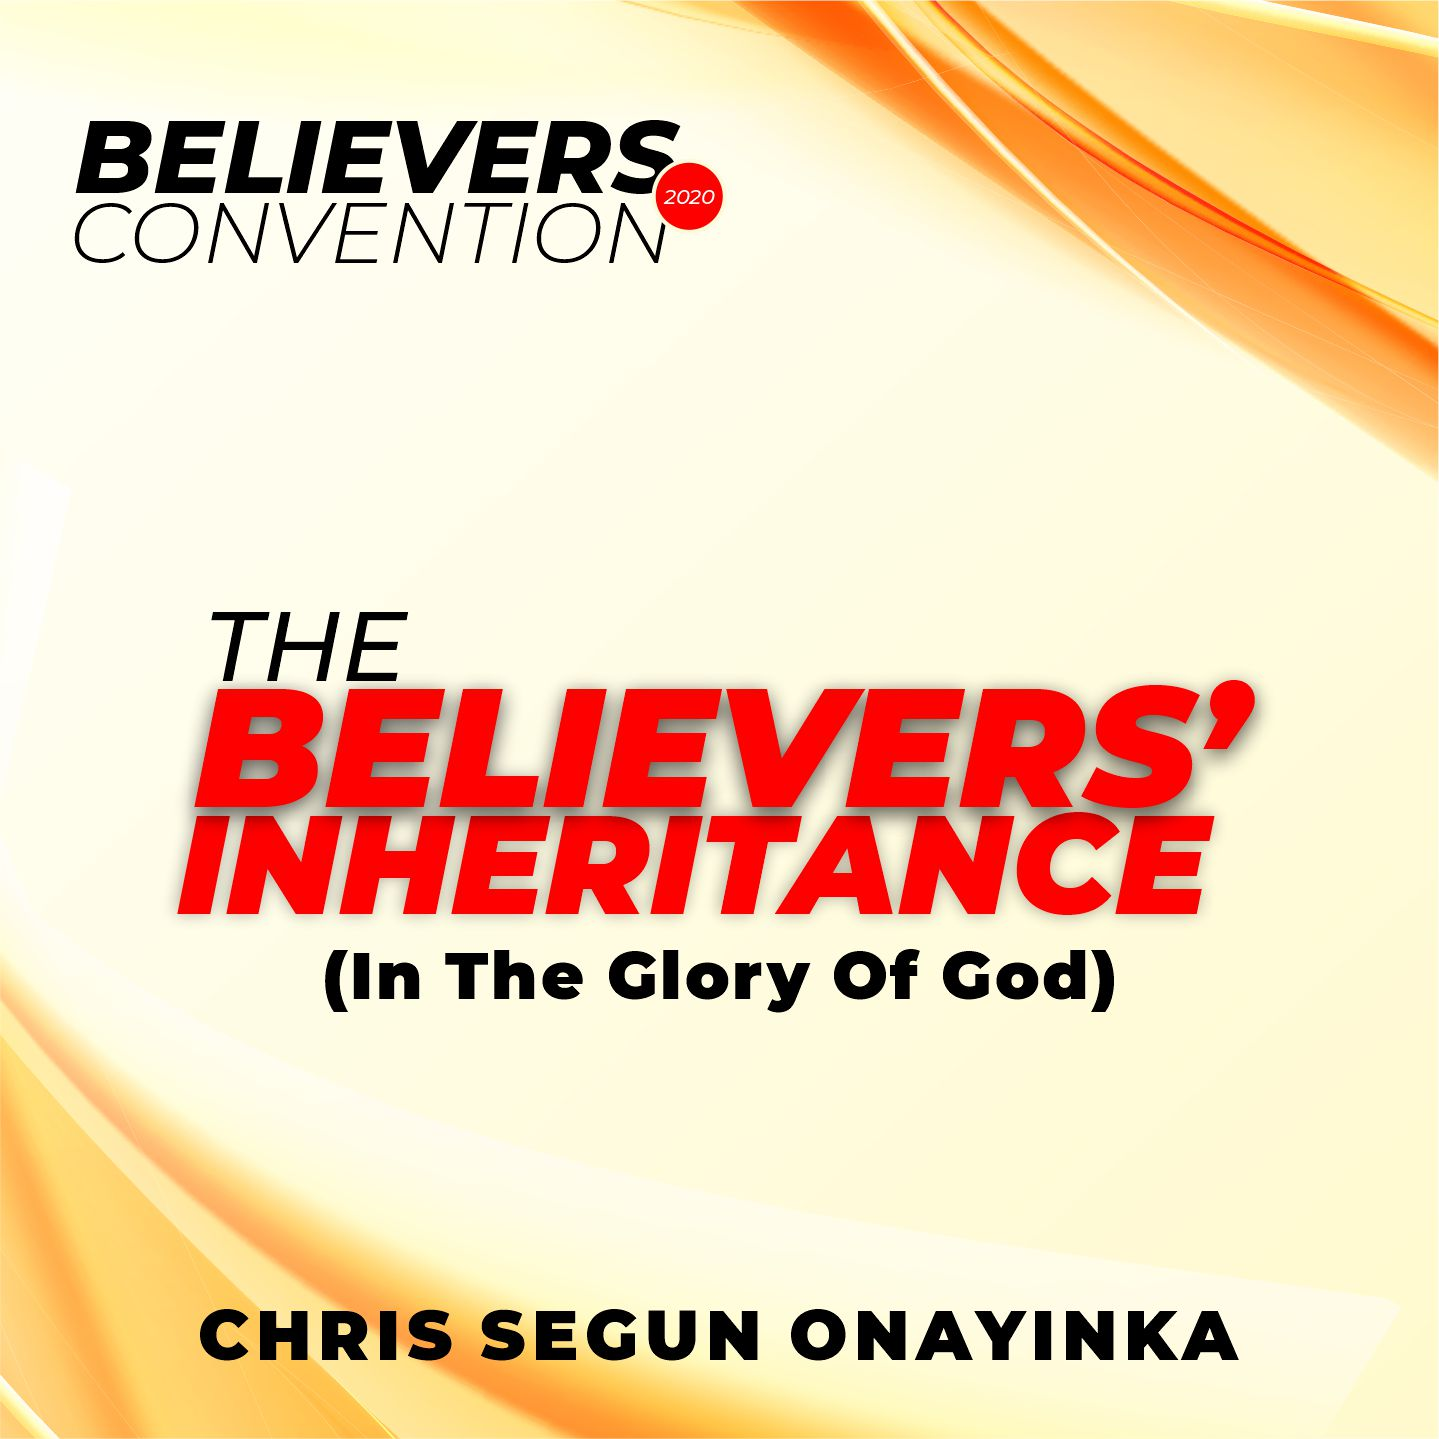 Believers Convention 2020 - The Believers' inheritance (in the glory of God)